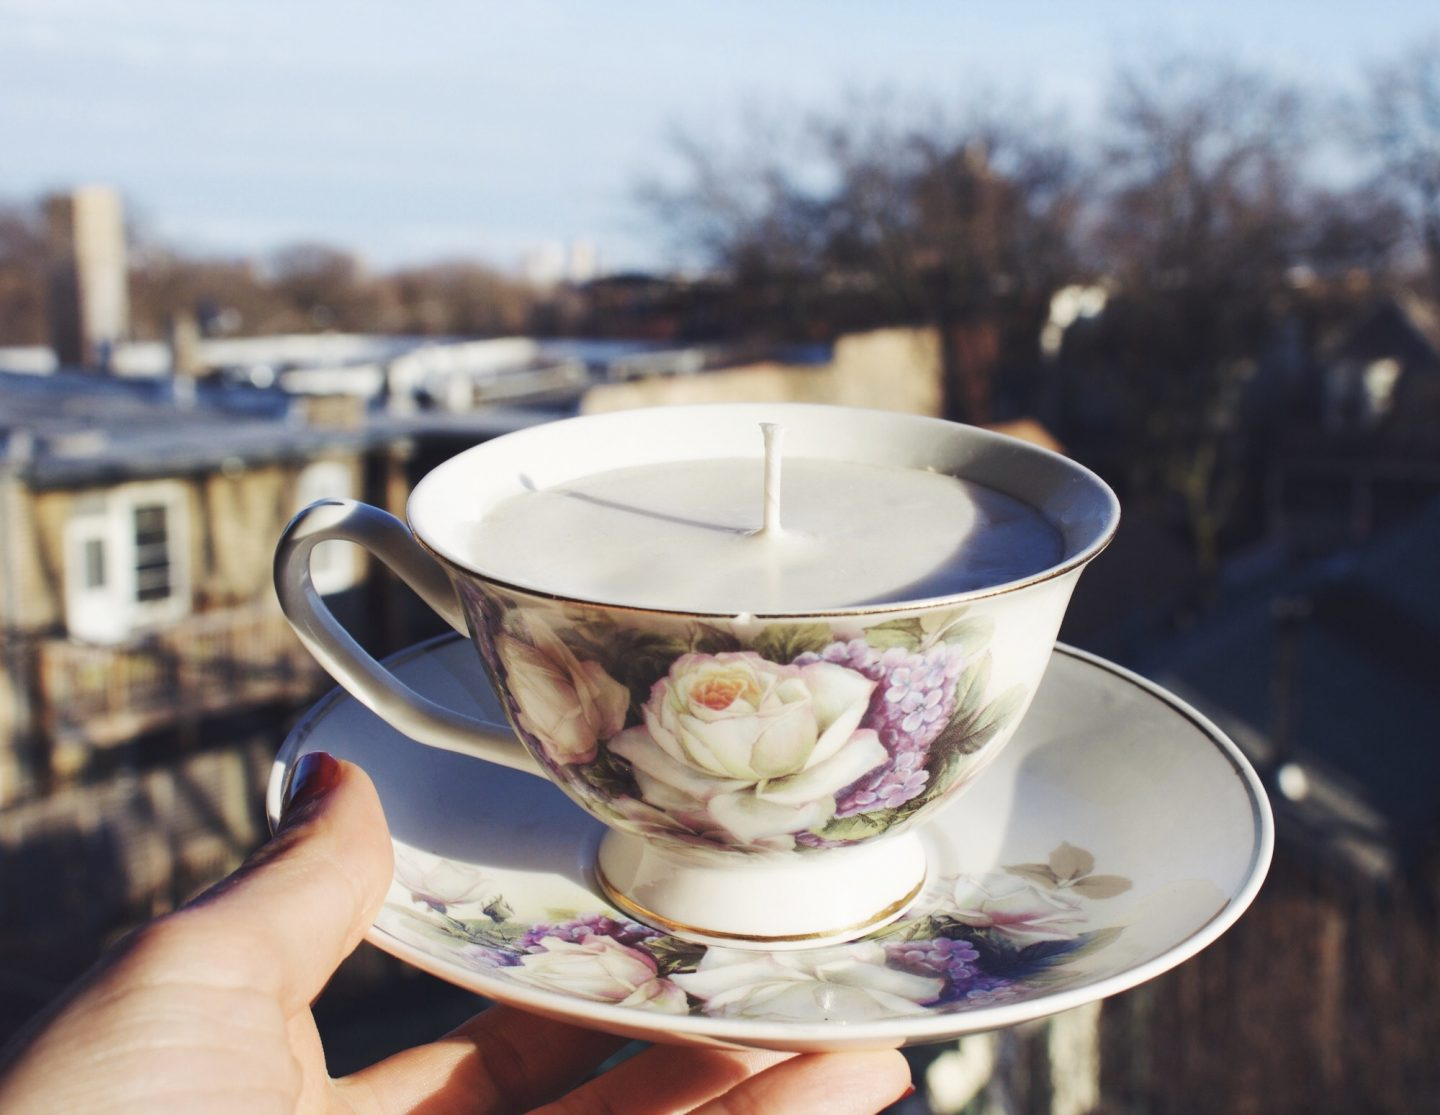 DIY :: How To Make Teacup Candles